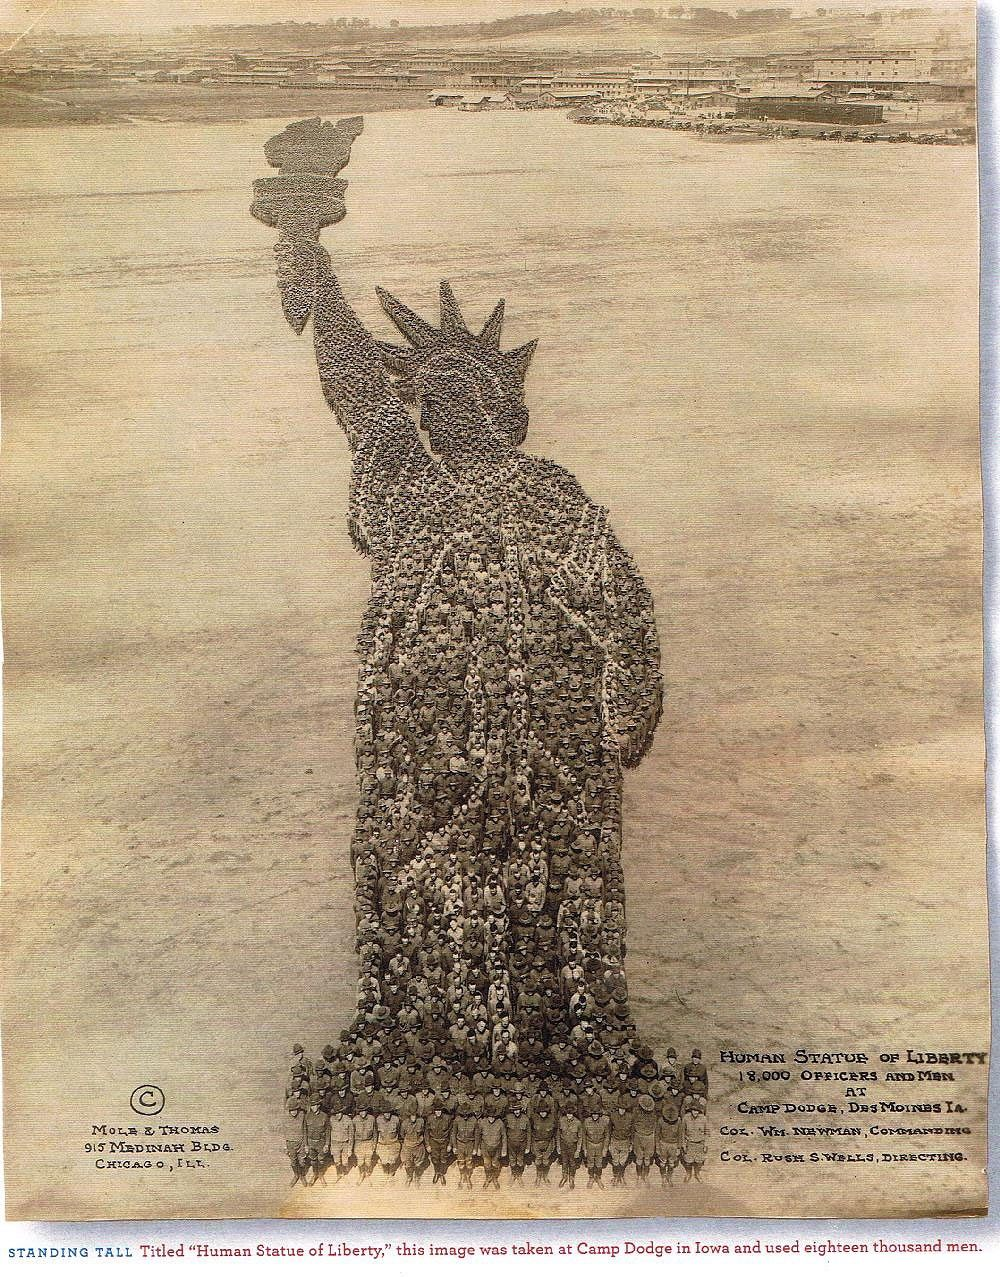 1918. Group photograph of 18,000 U.S. servicemen posing in formation to represent the Statue of Liberty. Camp Dodge, Des Moines, Iowa.jpg